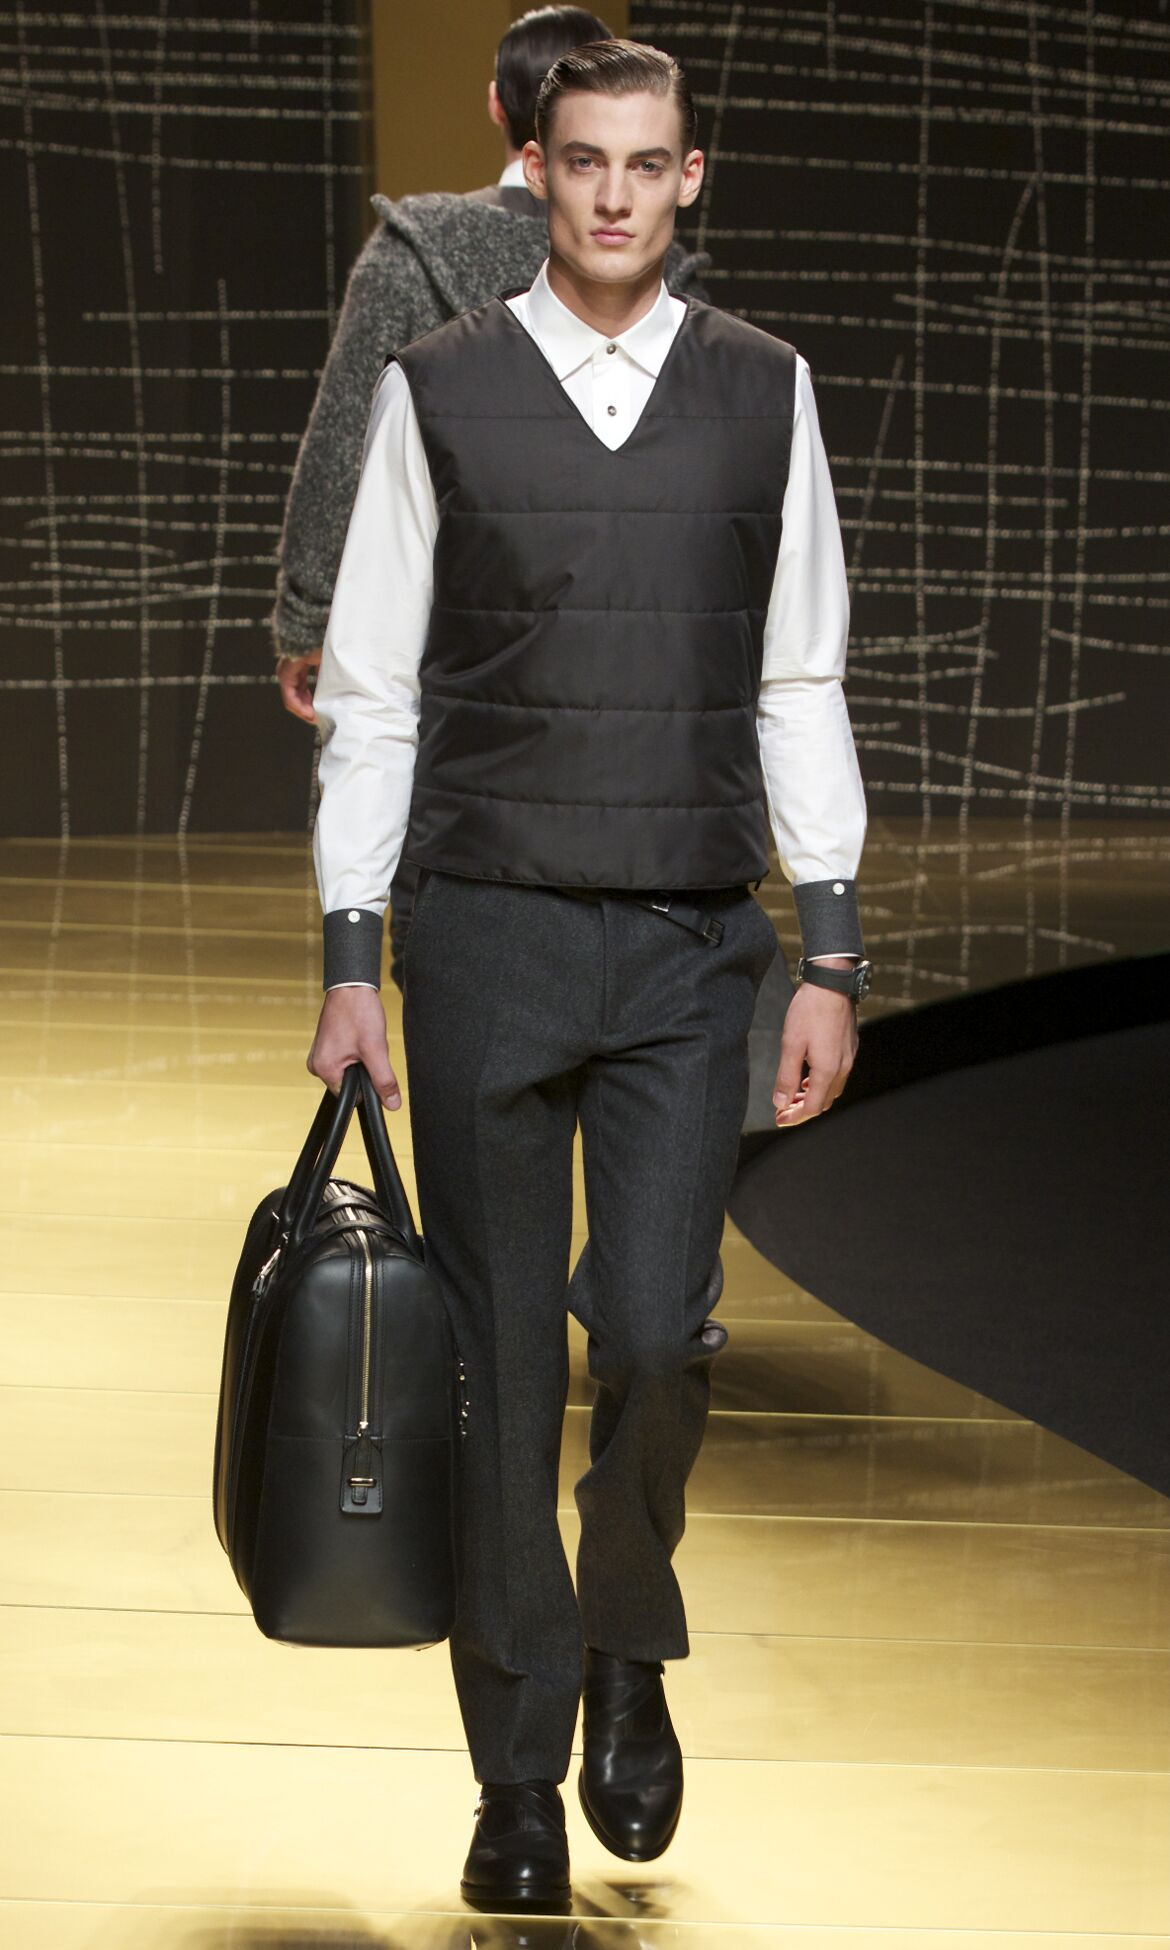 Winter 2013 Fashion Show Ermenegildo Zegna